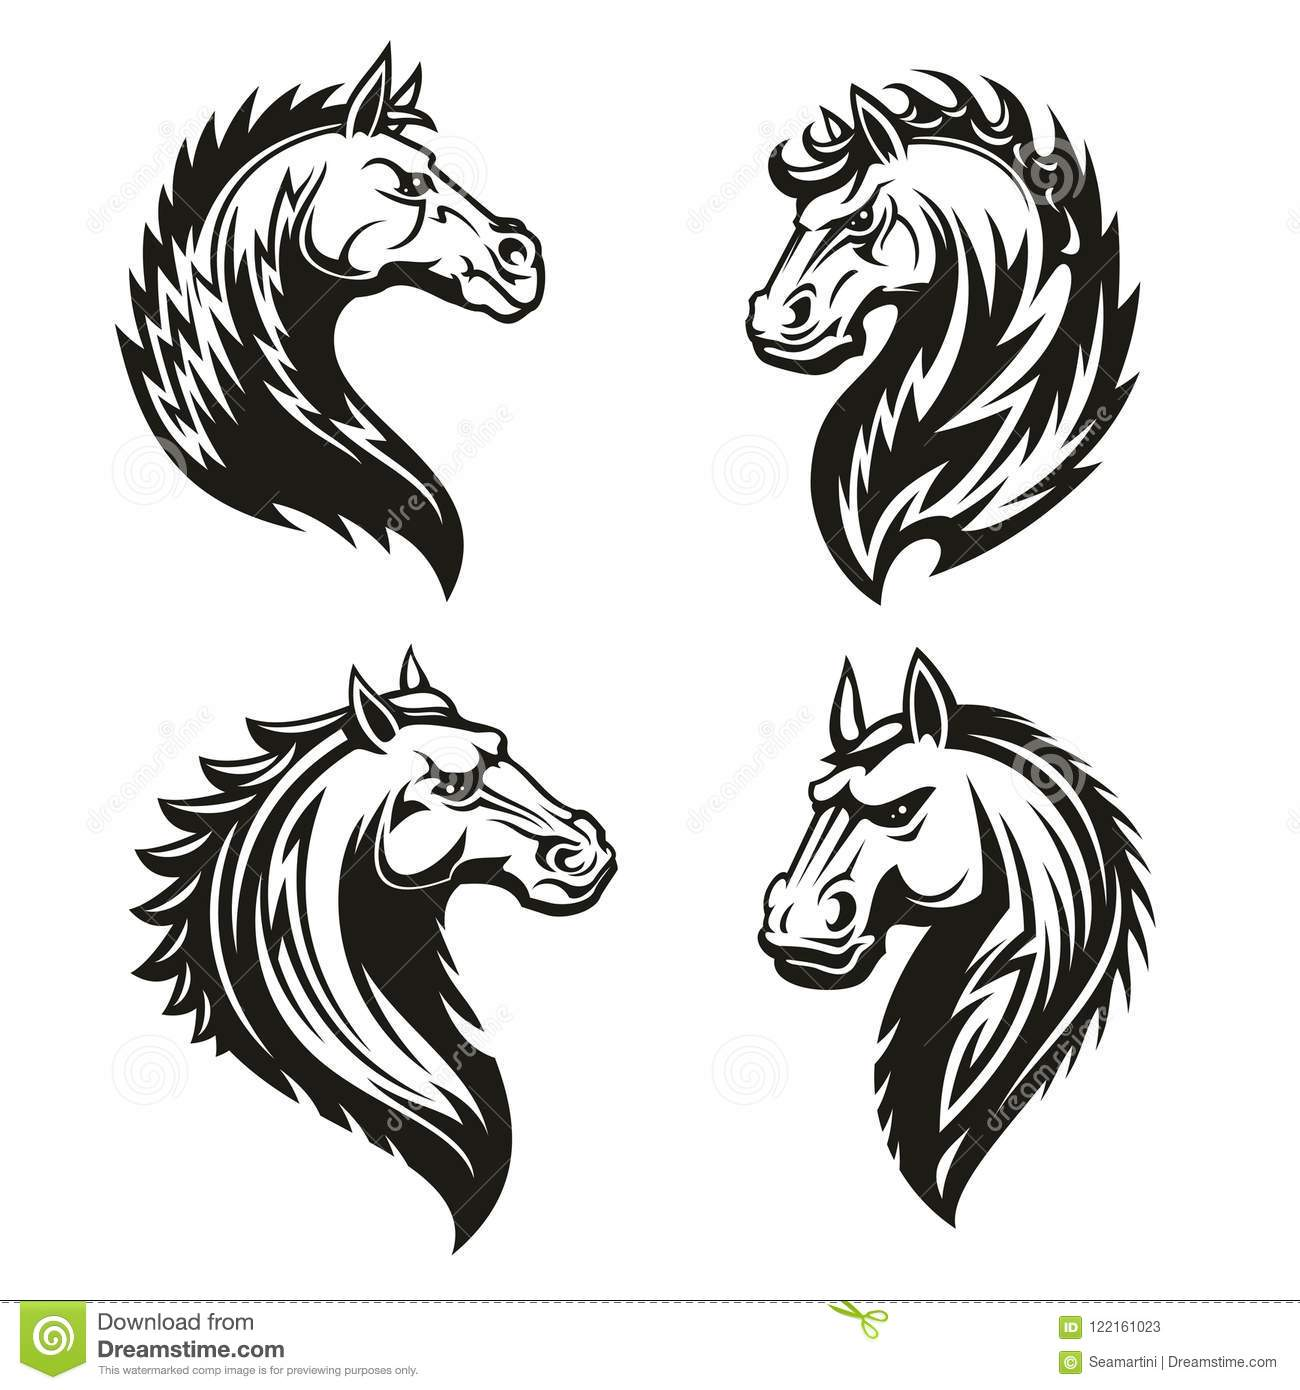 Tribal Horse Heads Mascot Or Tattoo Stock Vector Illustration Of Sport Equestrian 122161023